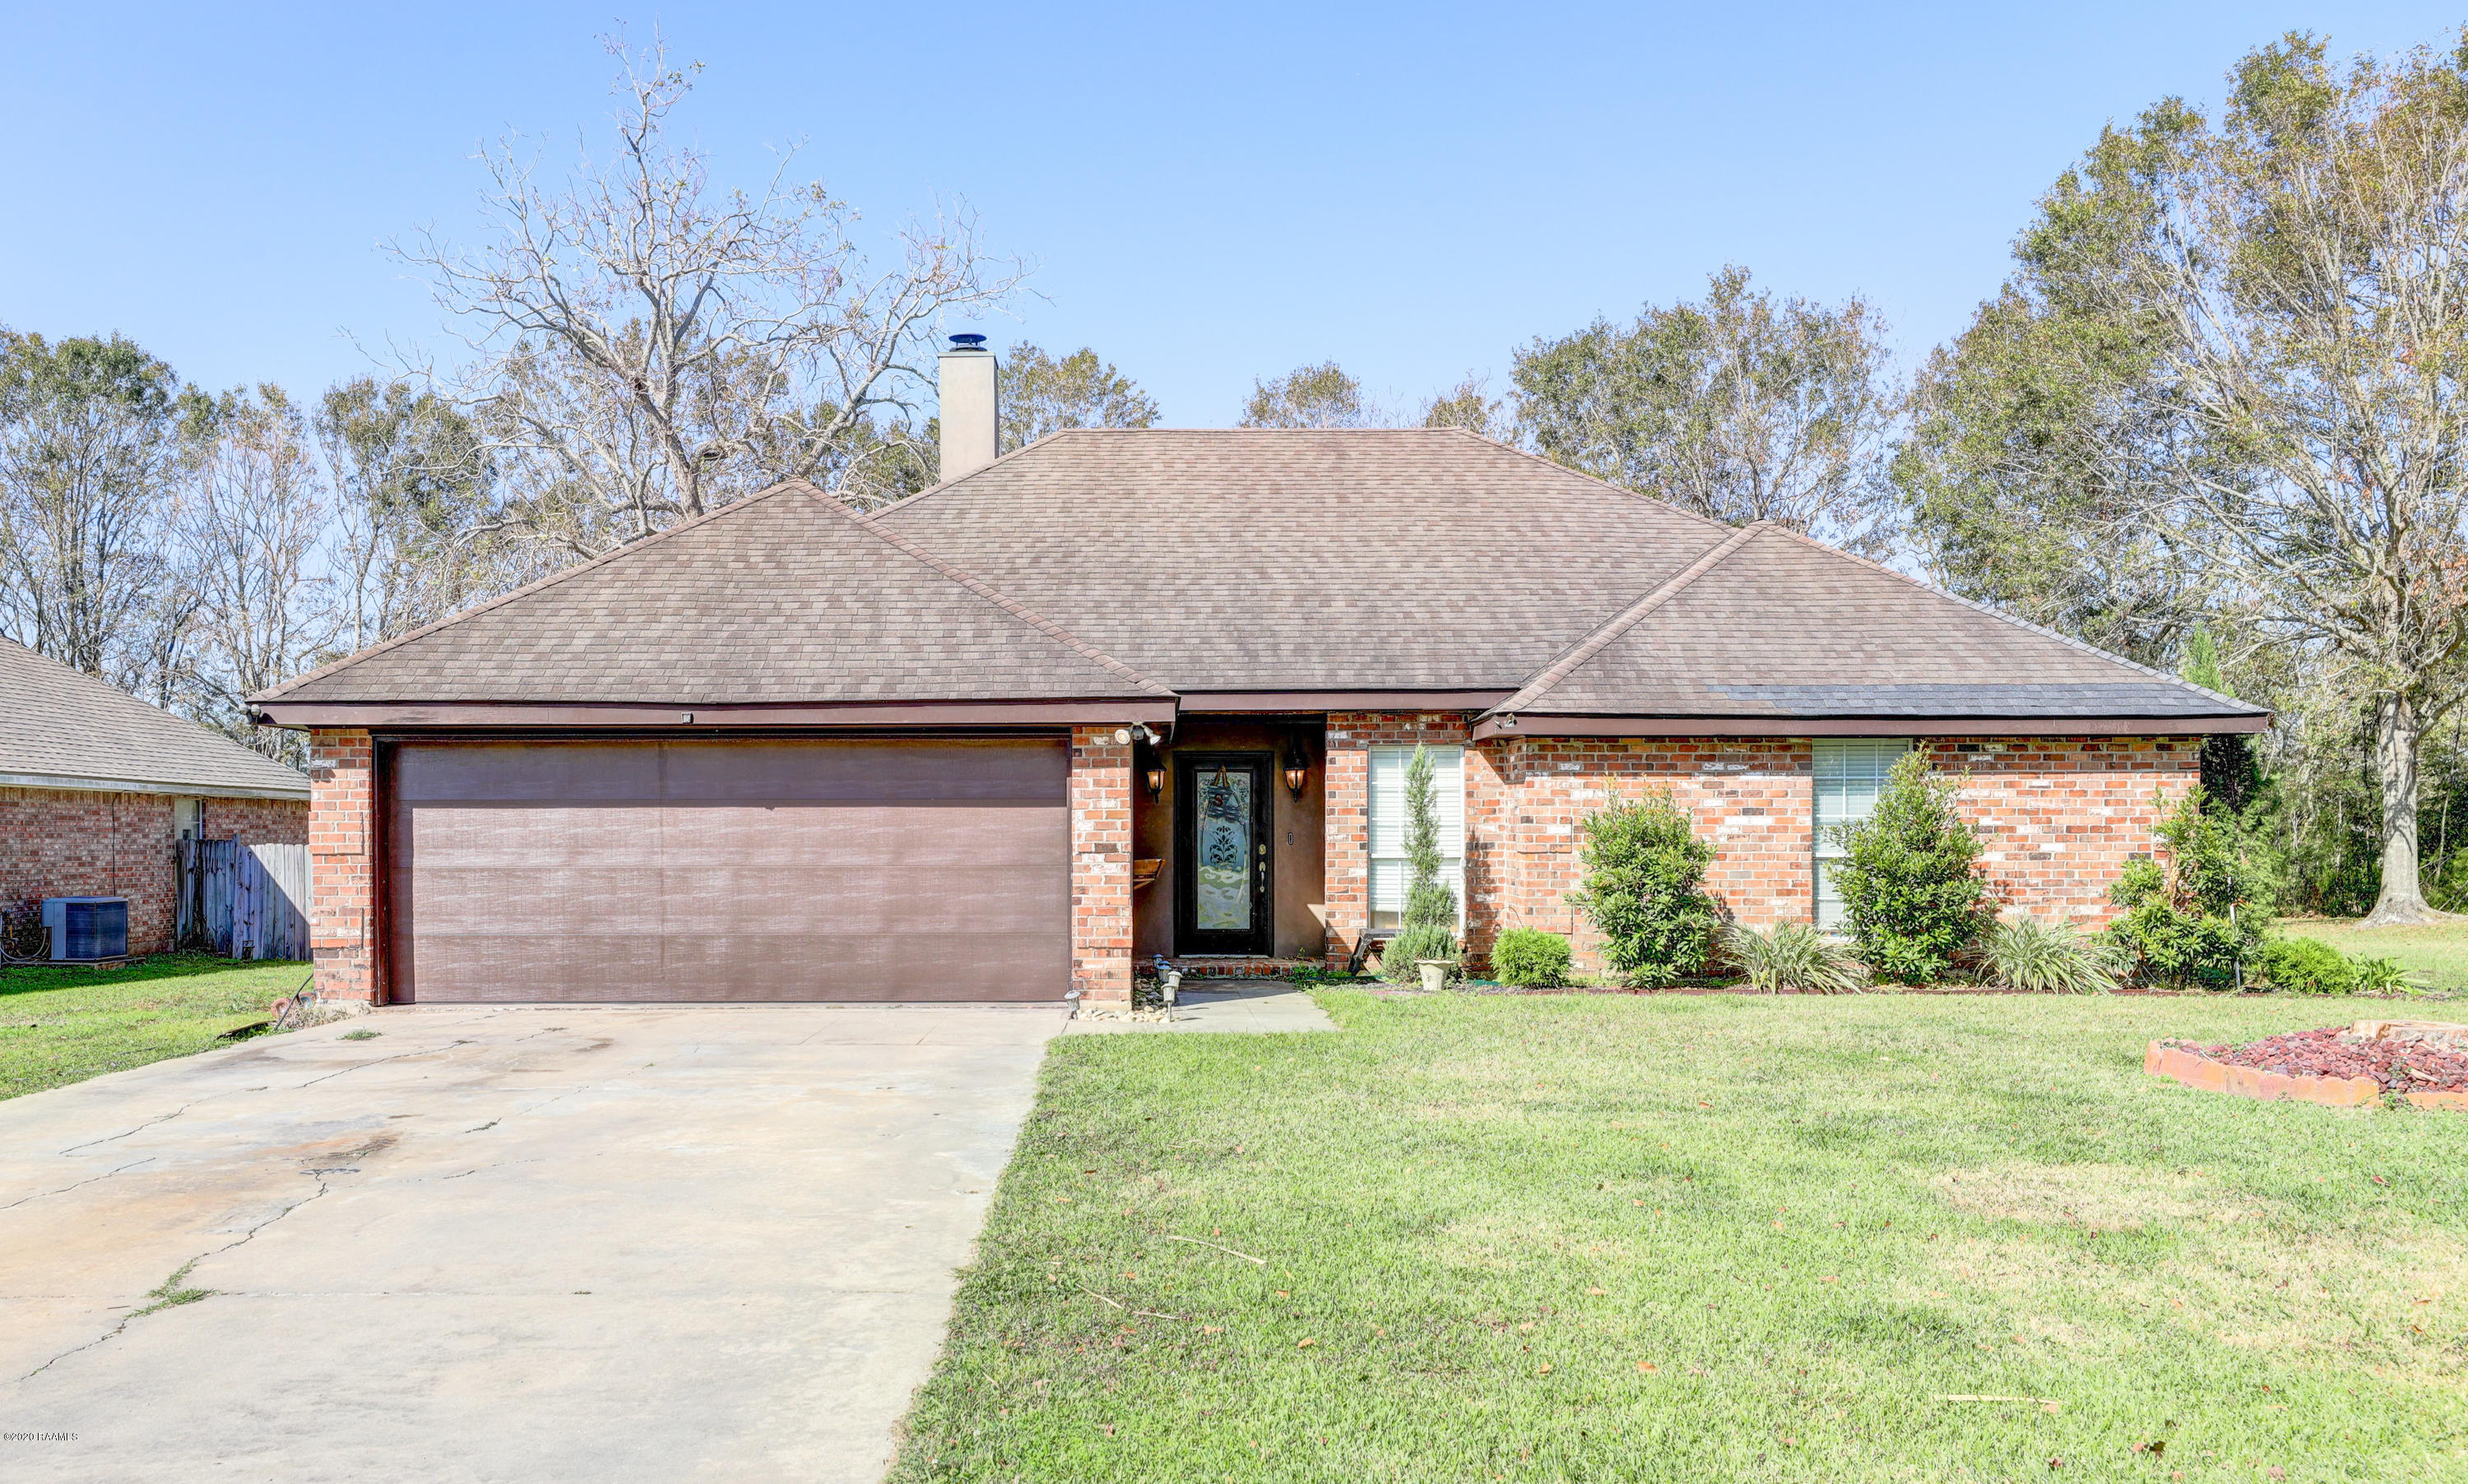 200 Olive Branch Drive, Youngsville, LA 70592 Photo #1